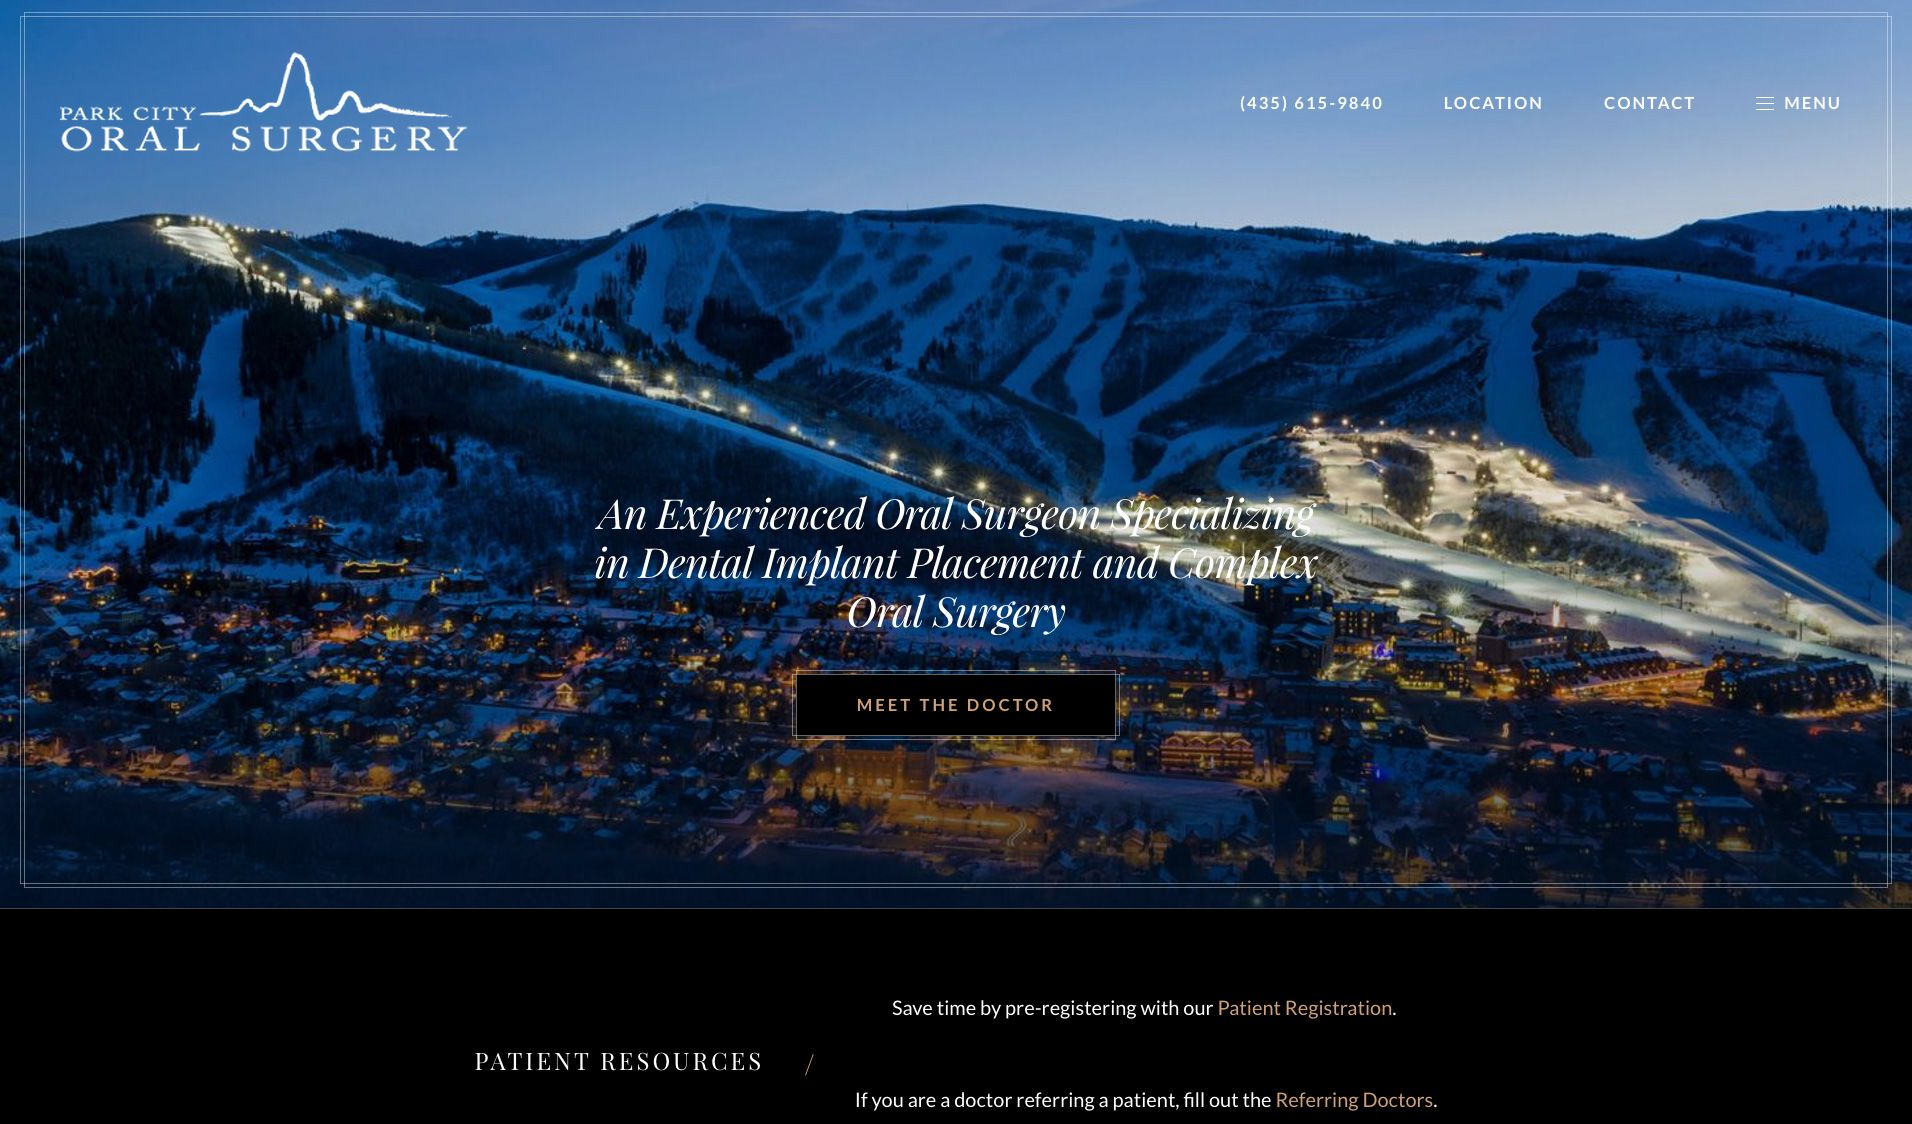 The website of Park City Oral Surgery